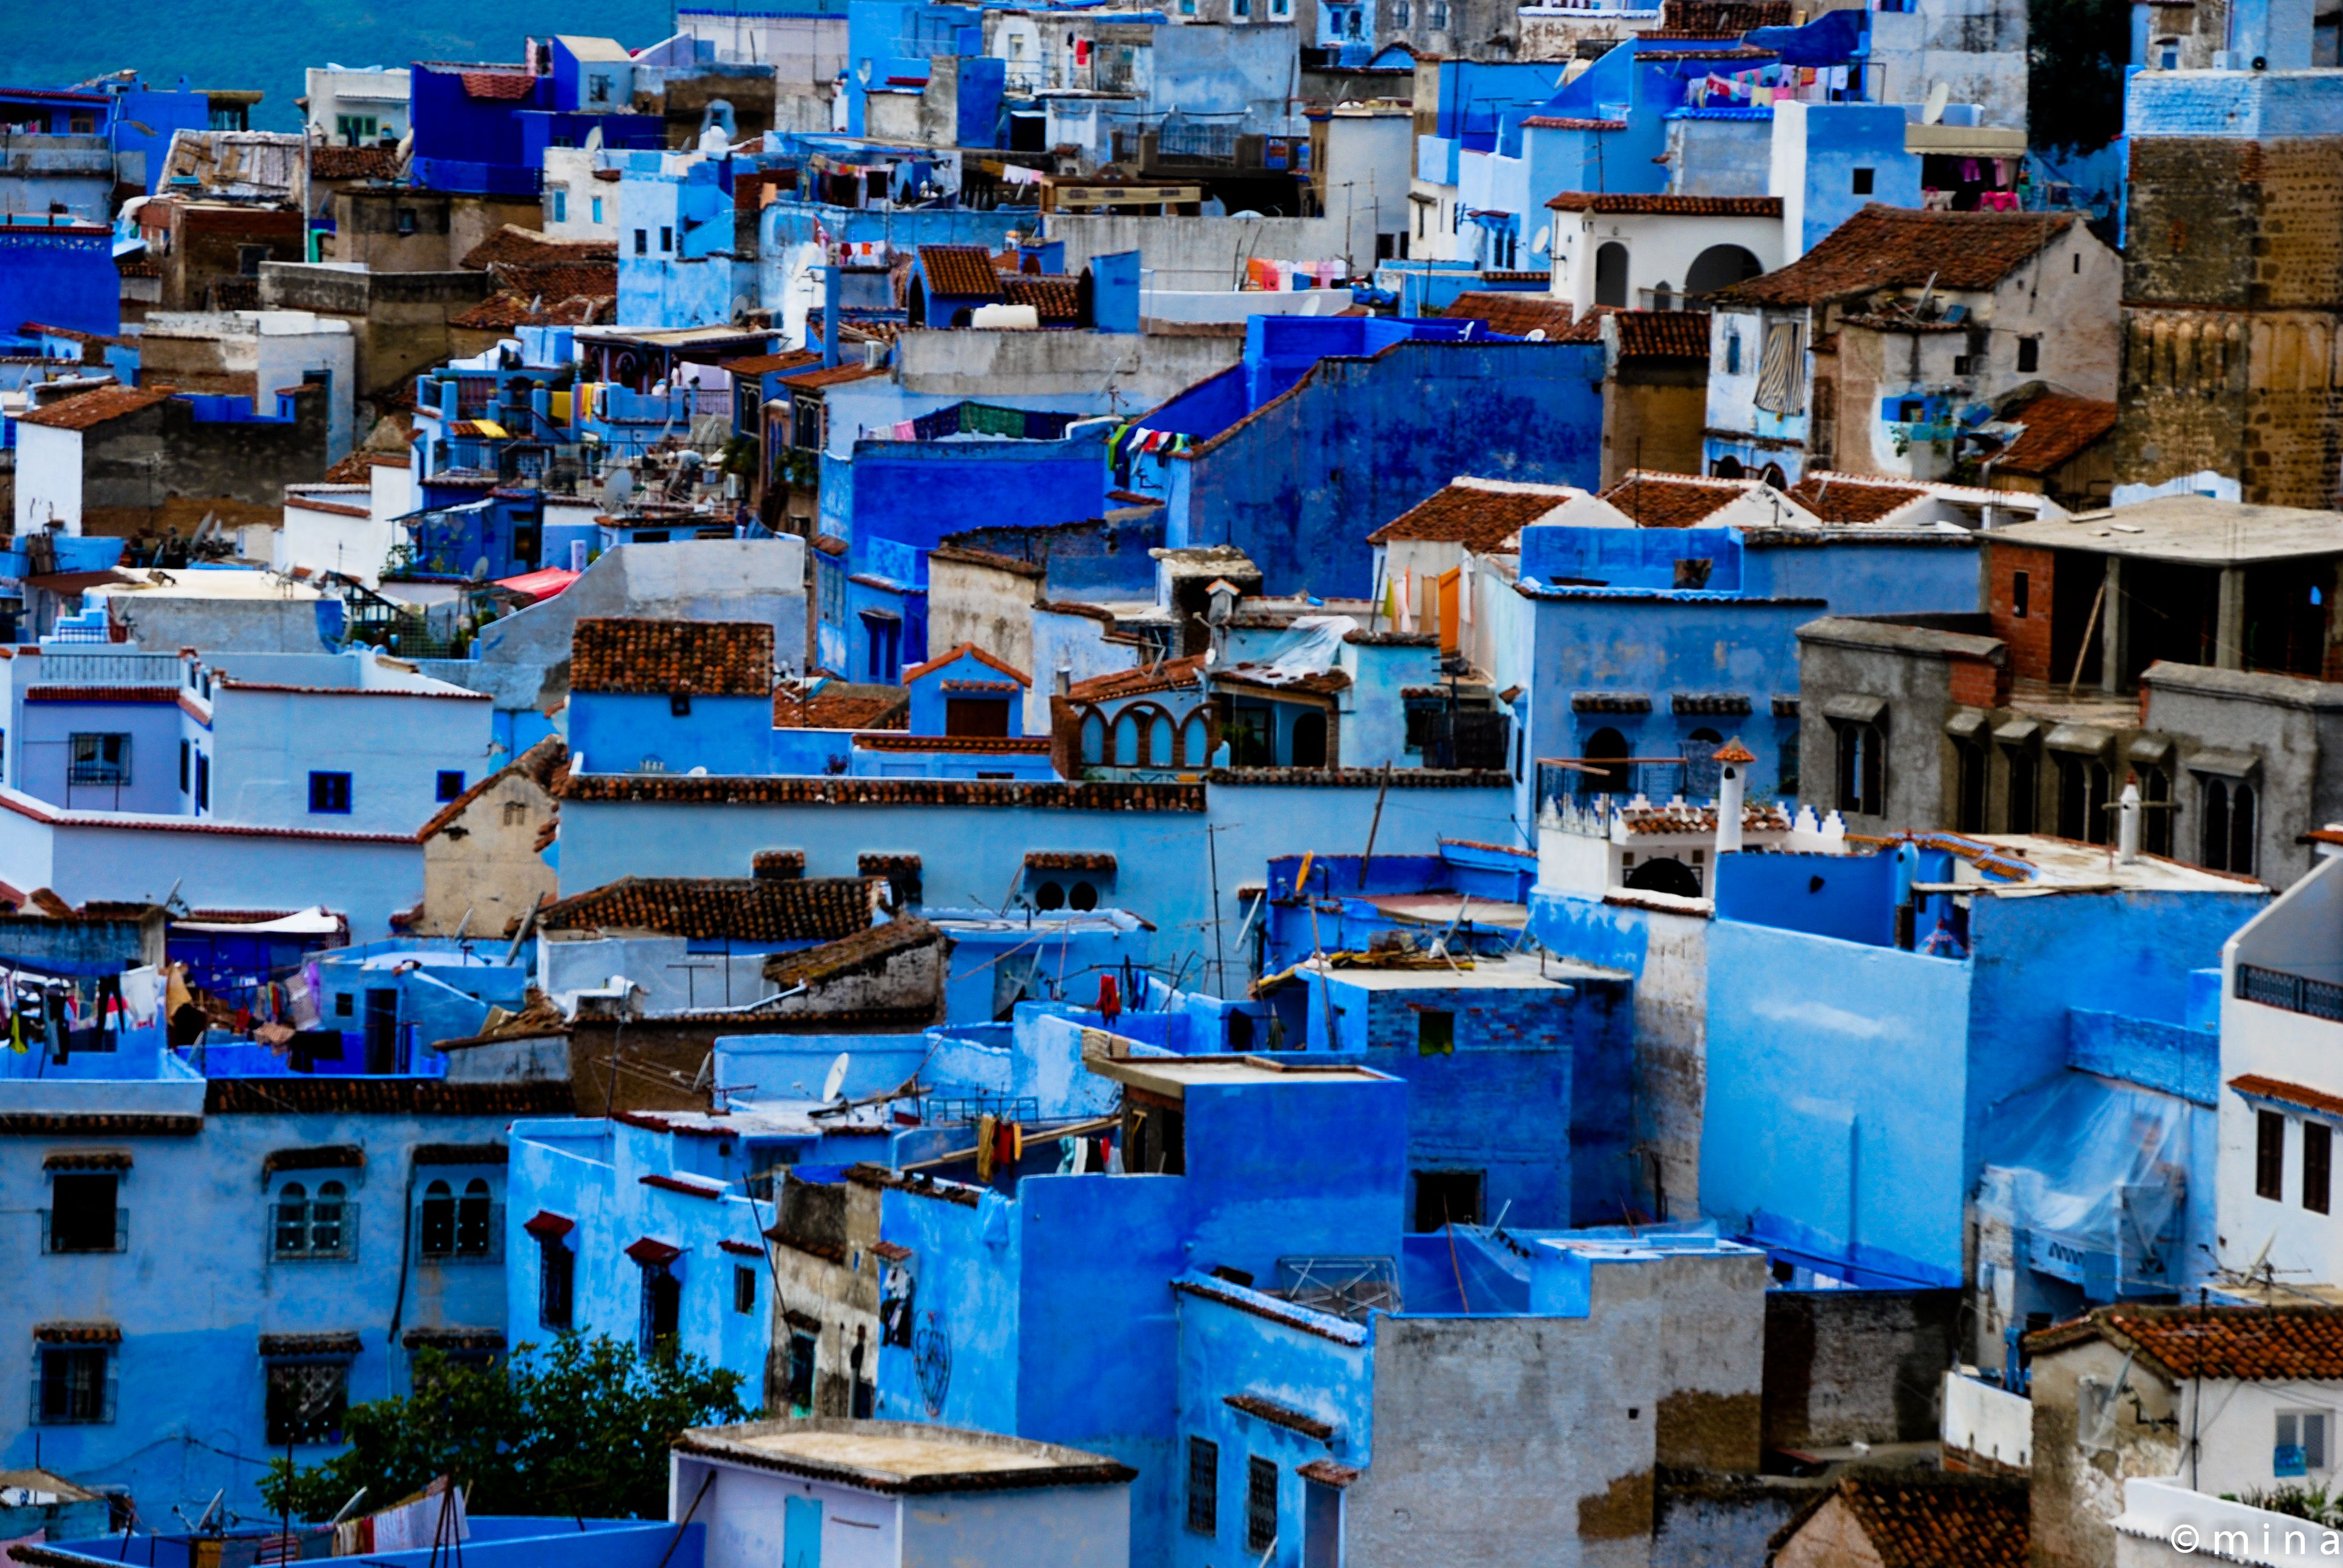 Chefchaouen is undoubtedly